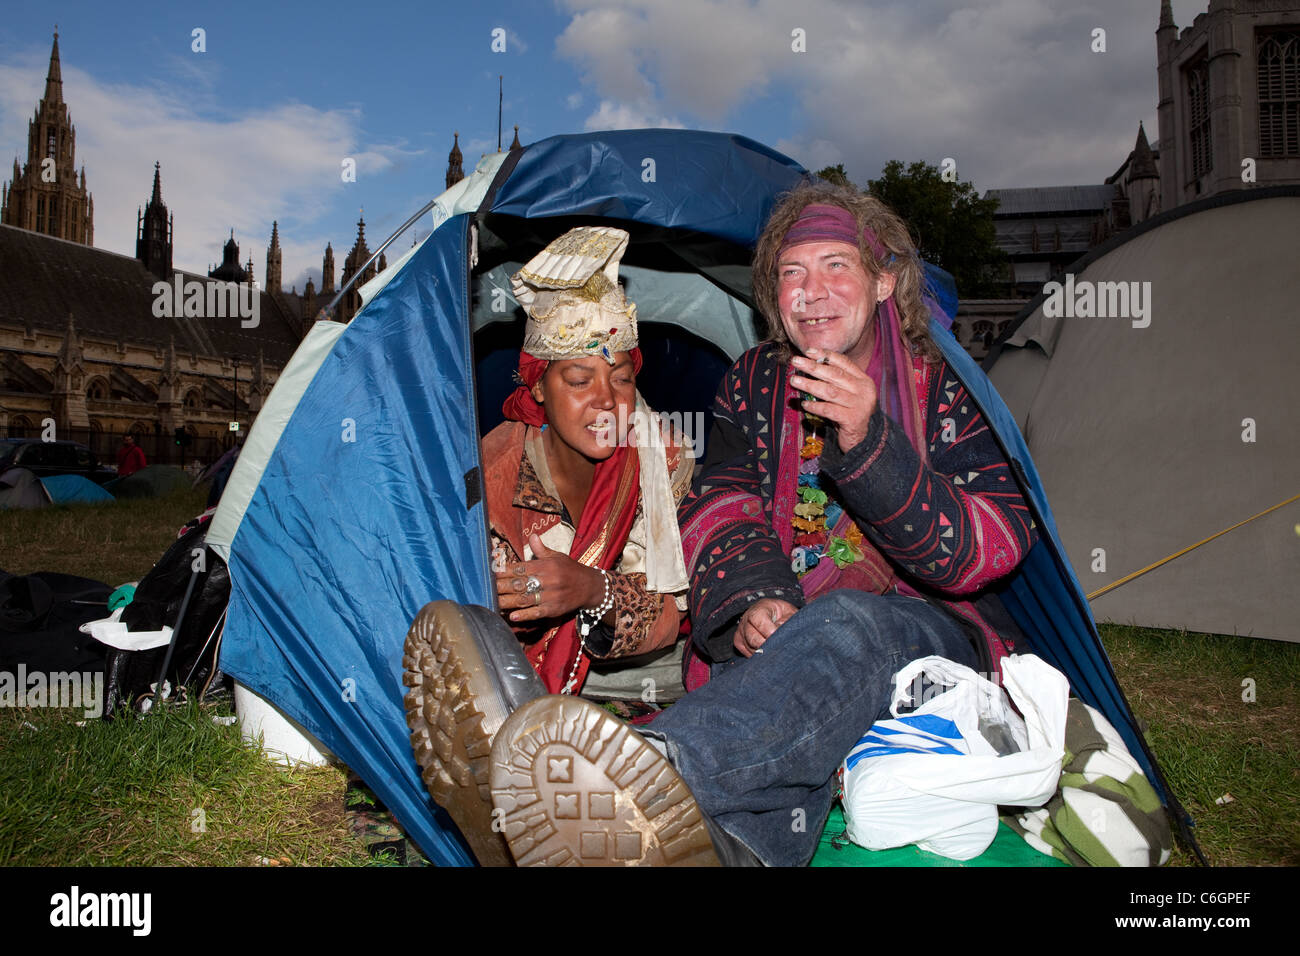 Homeless Democracy Village campers Tracy (L) and Tarquin (R) were living on the streets of Westminster before settling - Stock Image